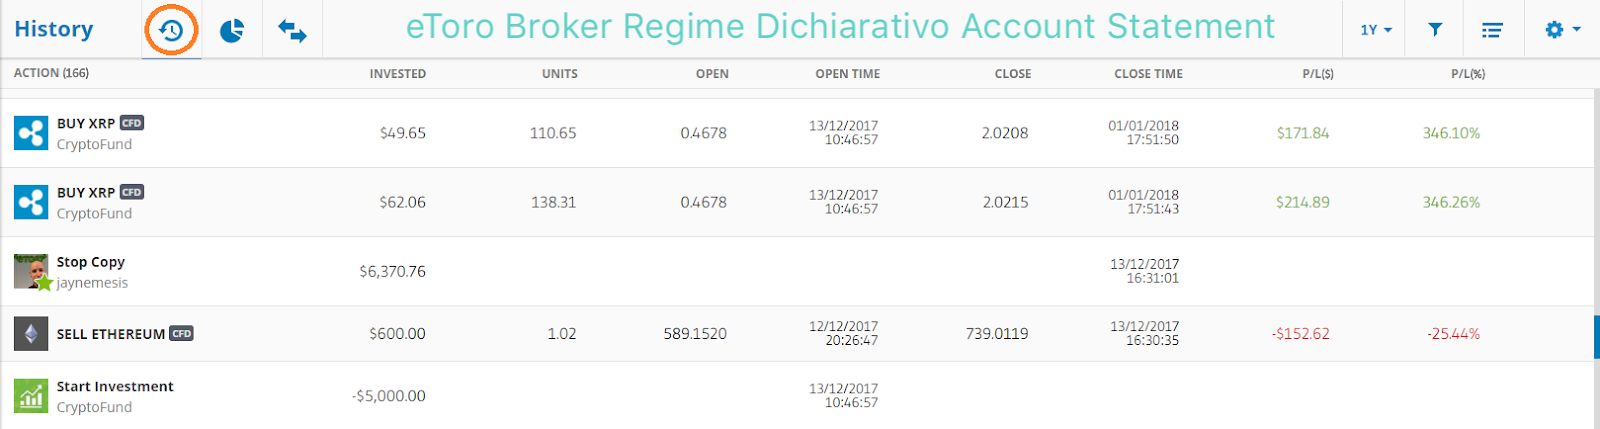 eToro Broker Regime Dichiarativo Account Statement